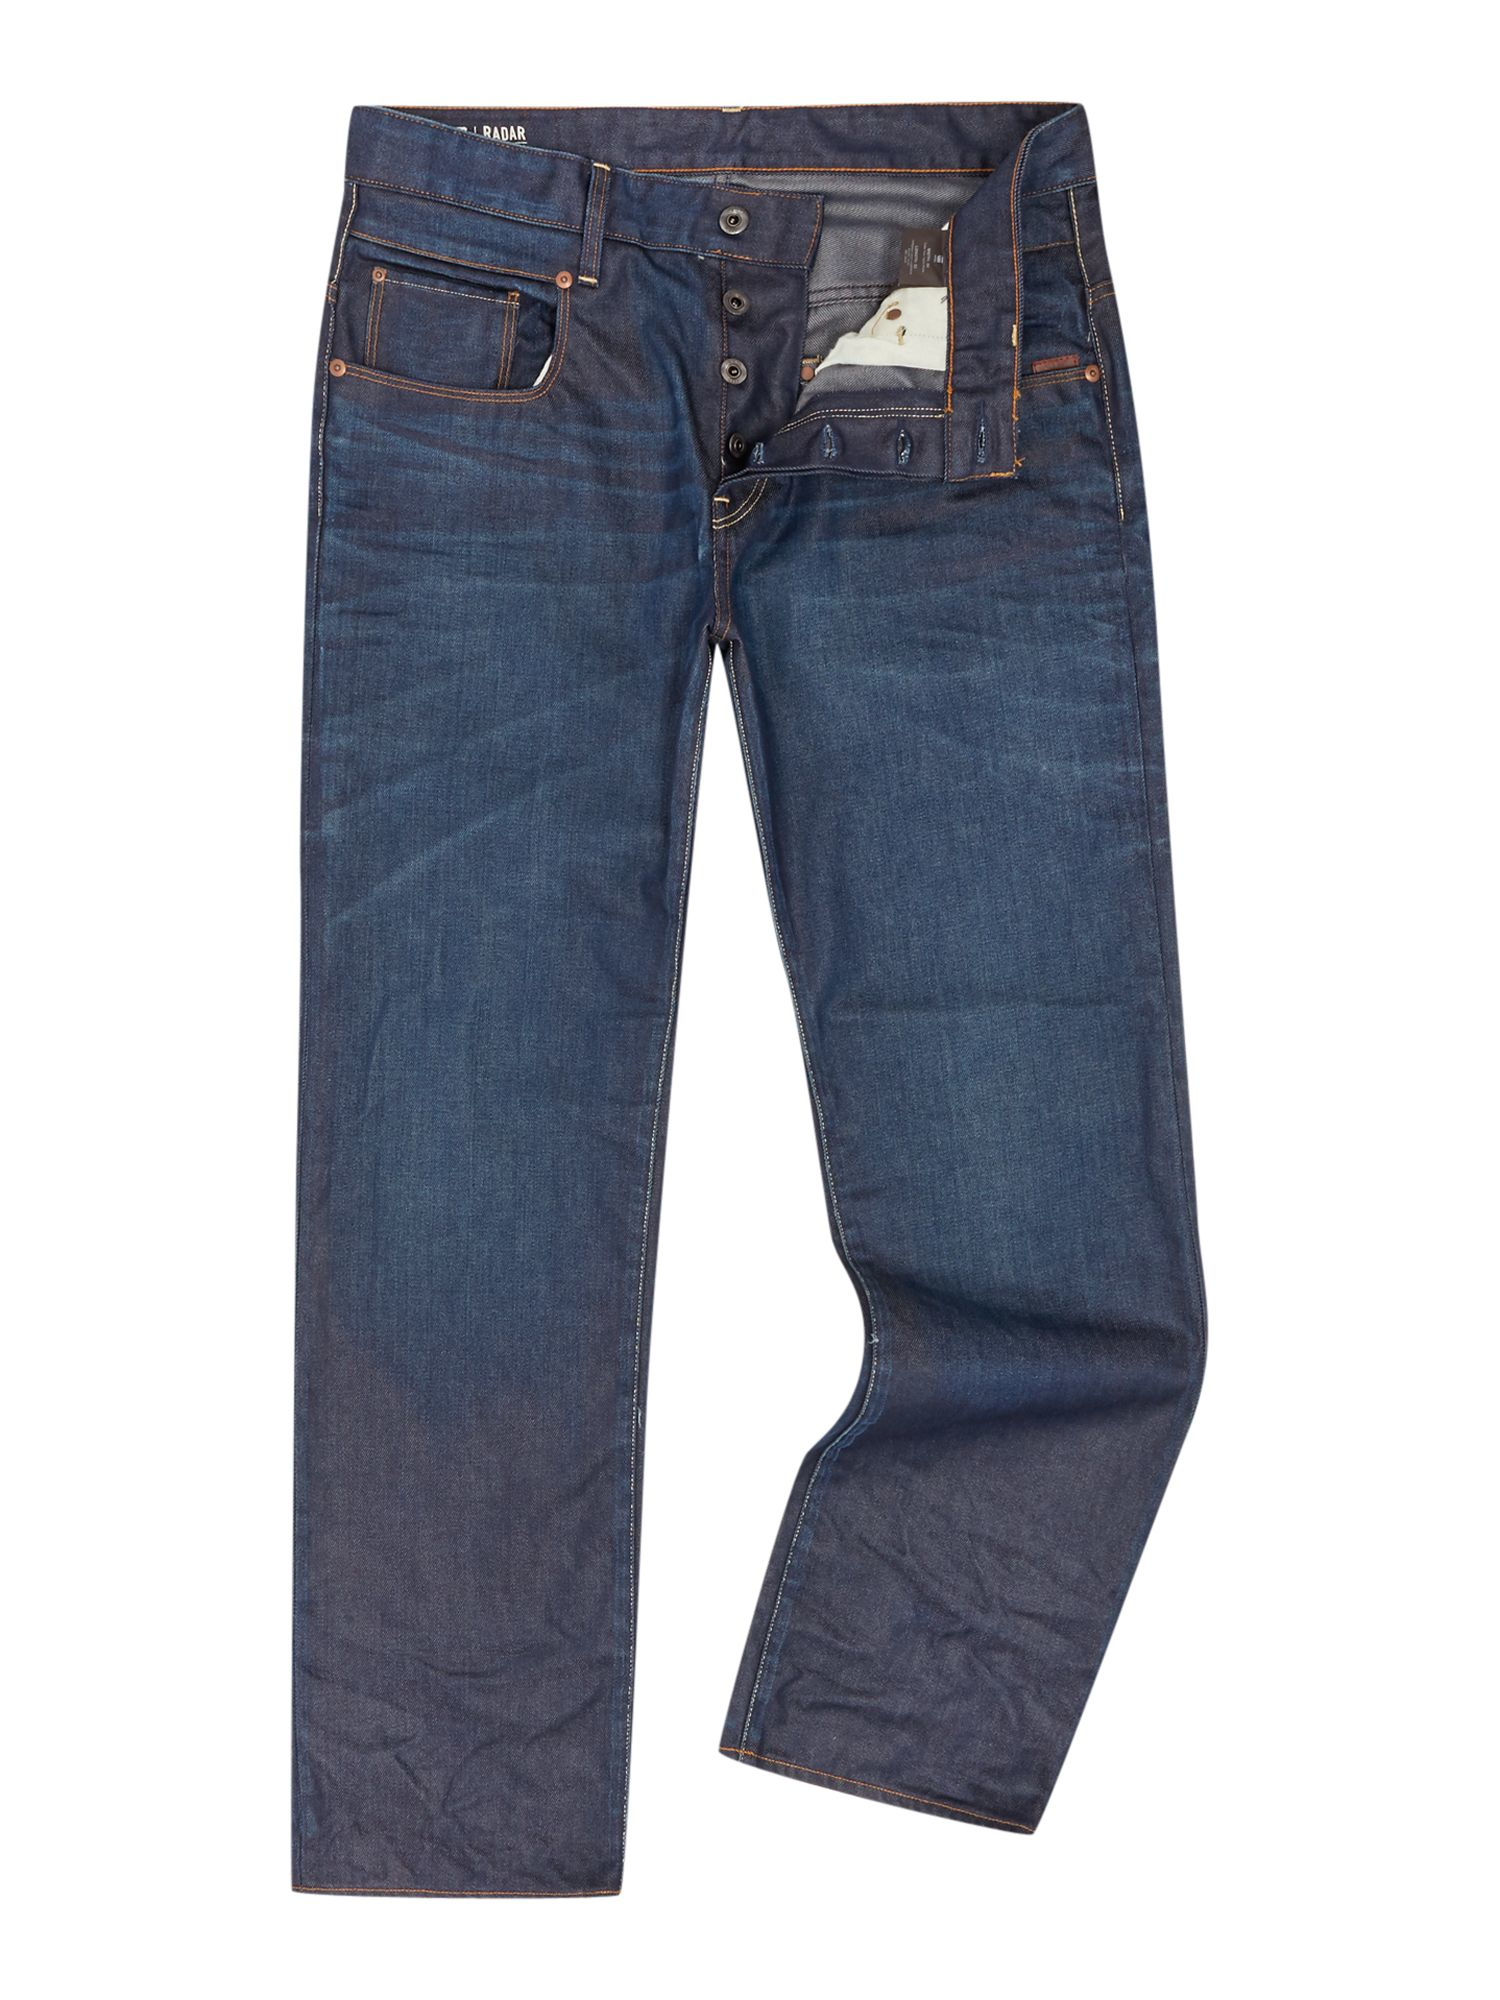 g star raw loosefit straight jeans in blue for men lyst. Black Bedroom Furniture Sets. Home Design Ideas